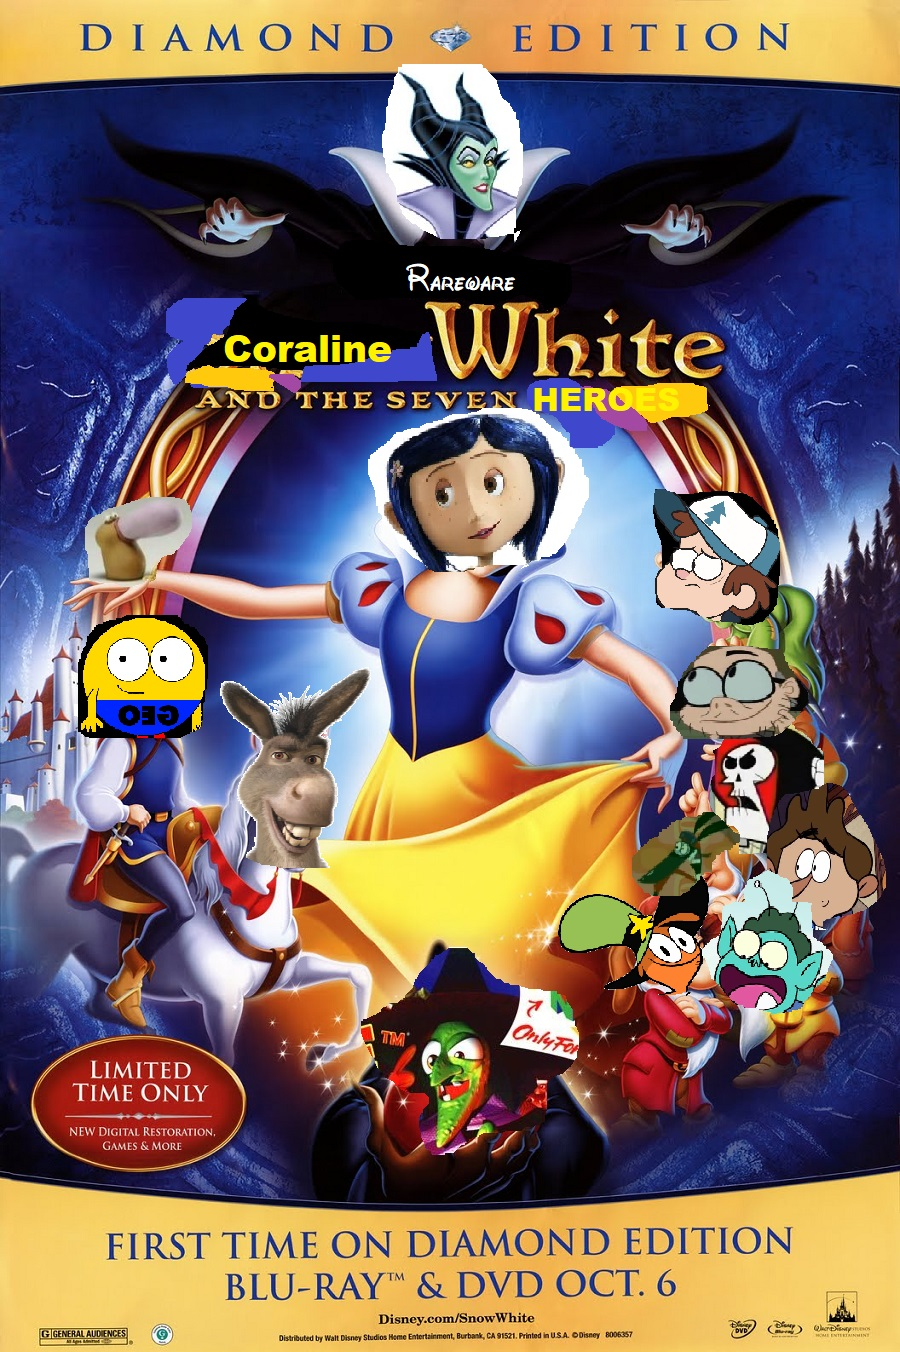 Coraline White and the Seven Heroes